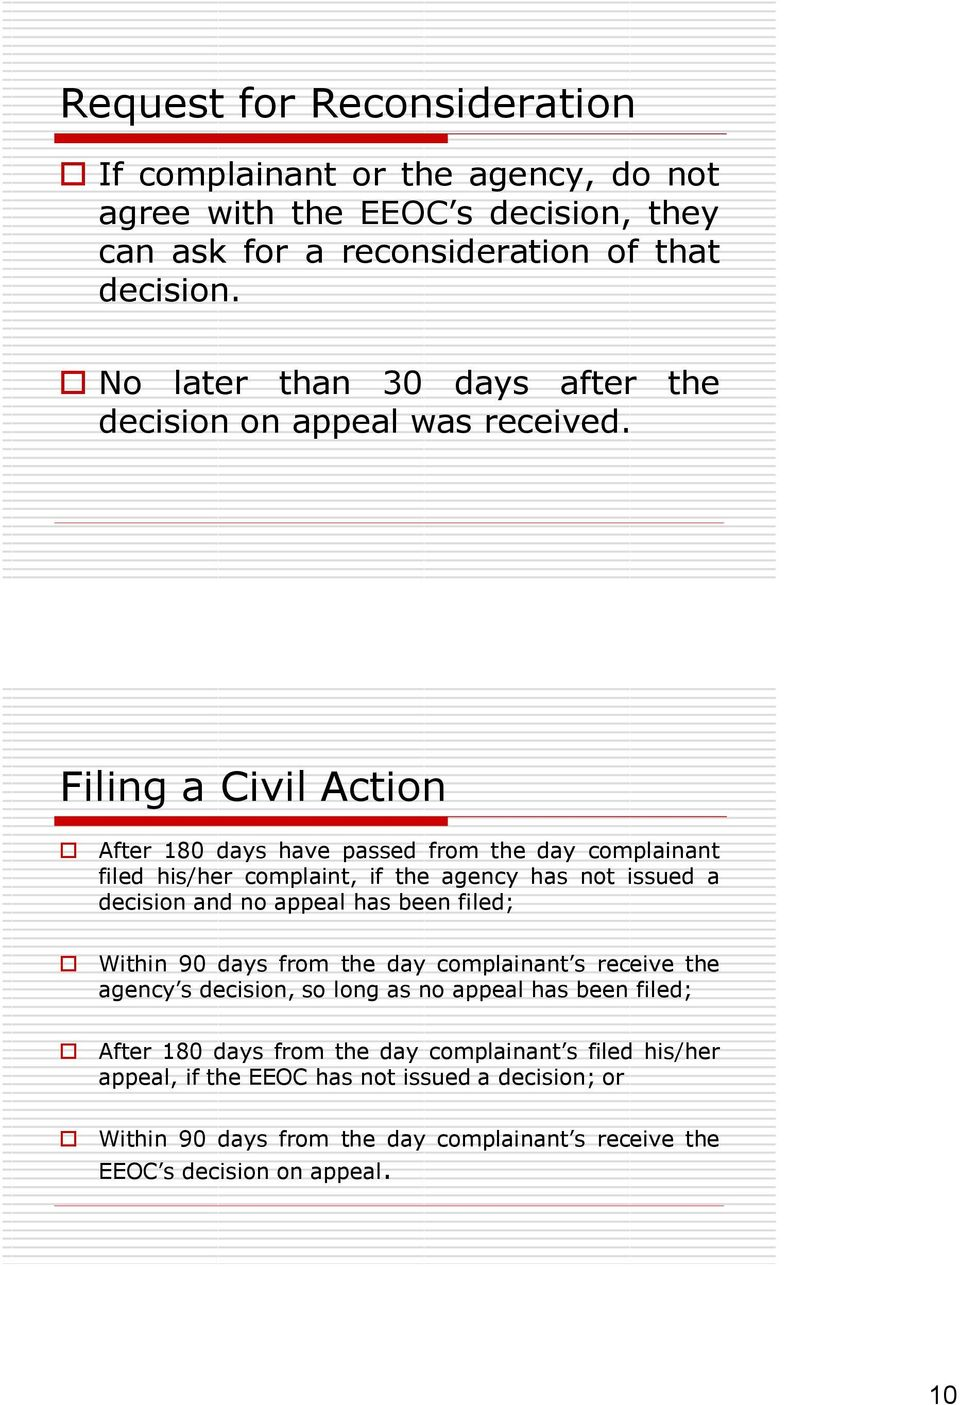 Filing a Civil Action After 180 days have passed from the day complainant filed his/her complaint, if the agency has not issued a decision and no appeal has been filed;